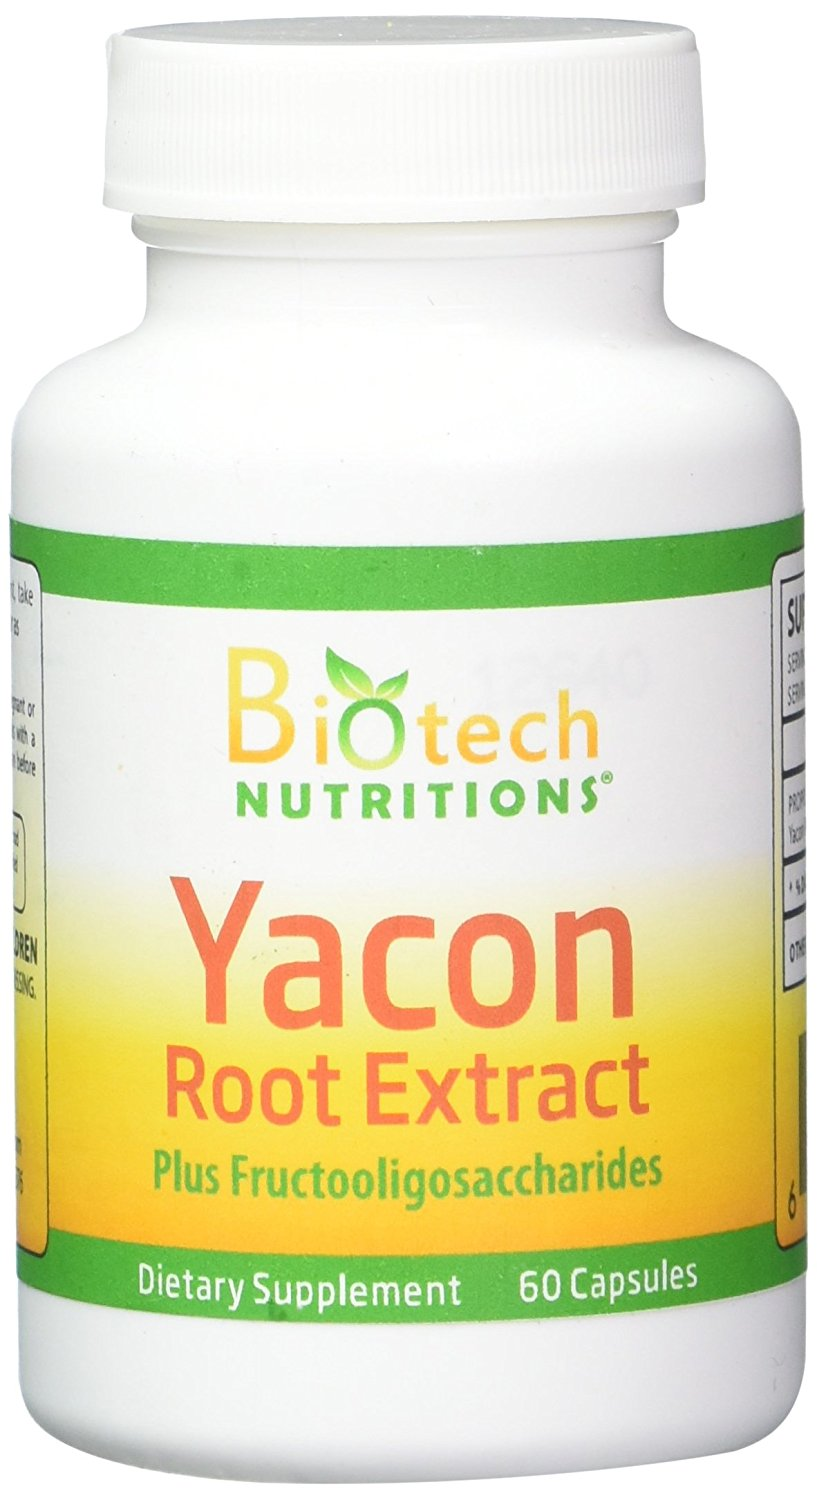 Biotech Nutritions Yacon Root Extract 60 Capsules